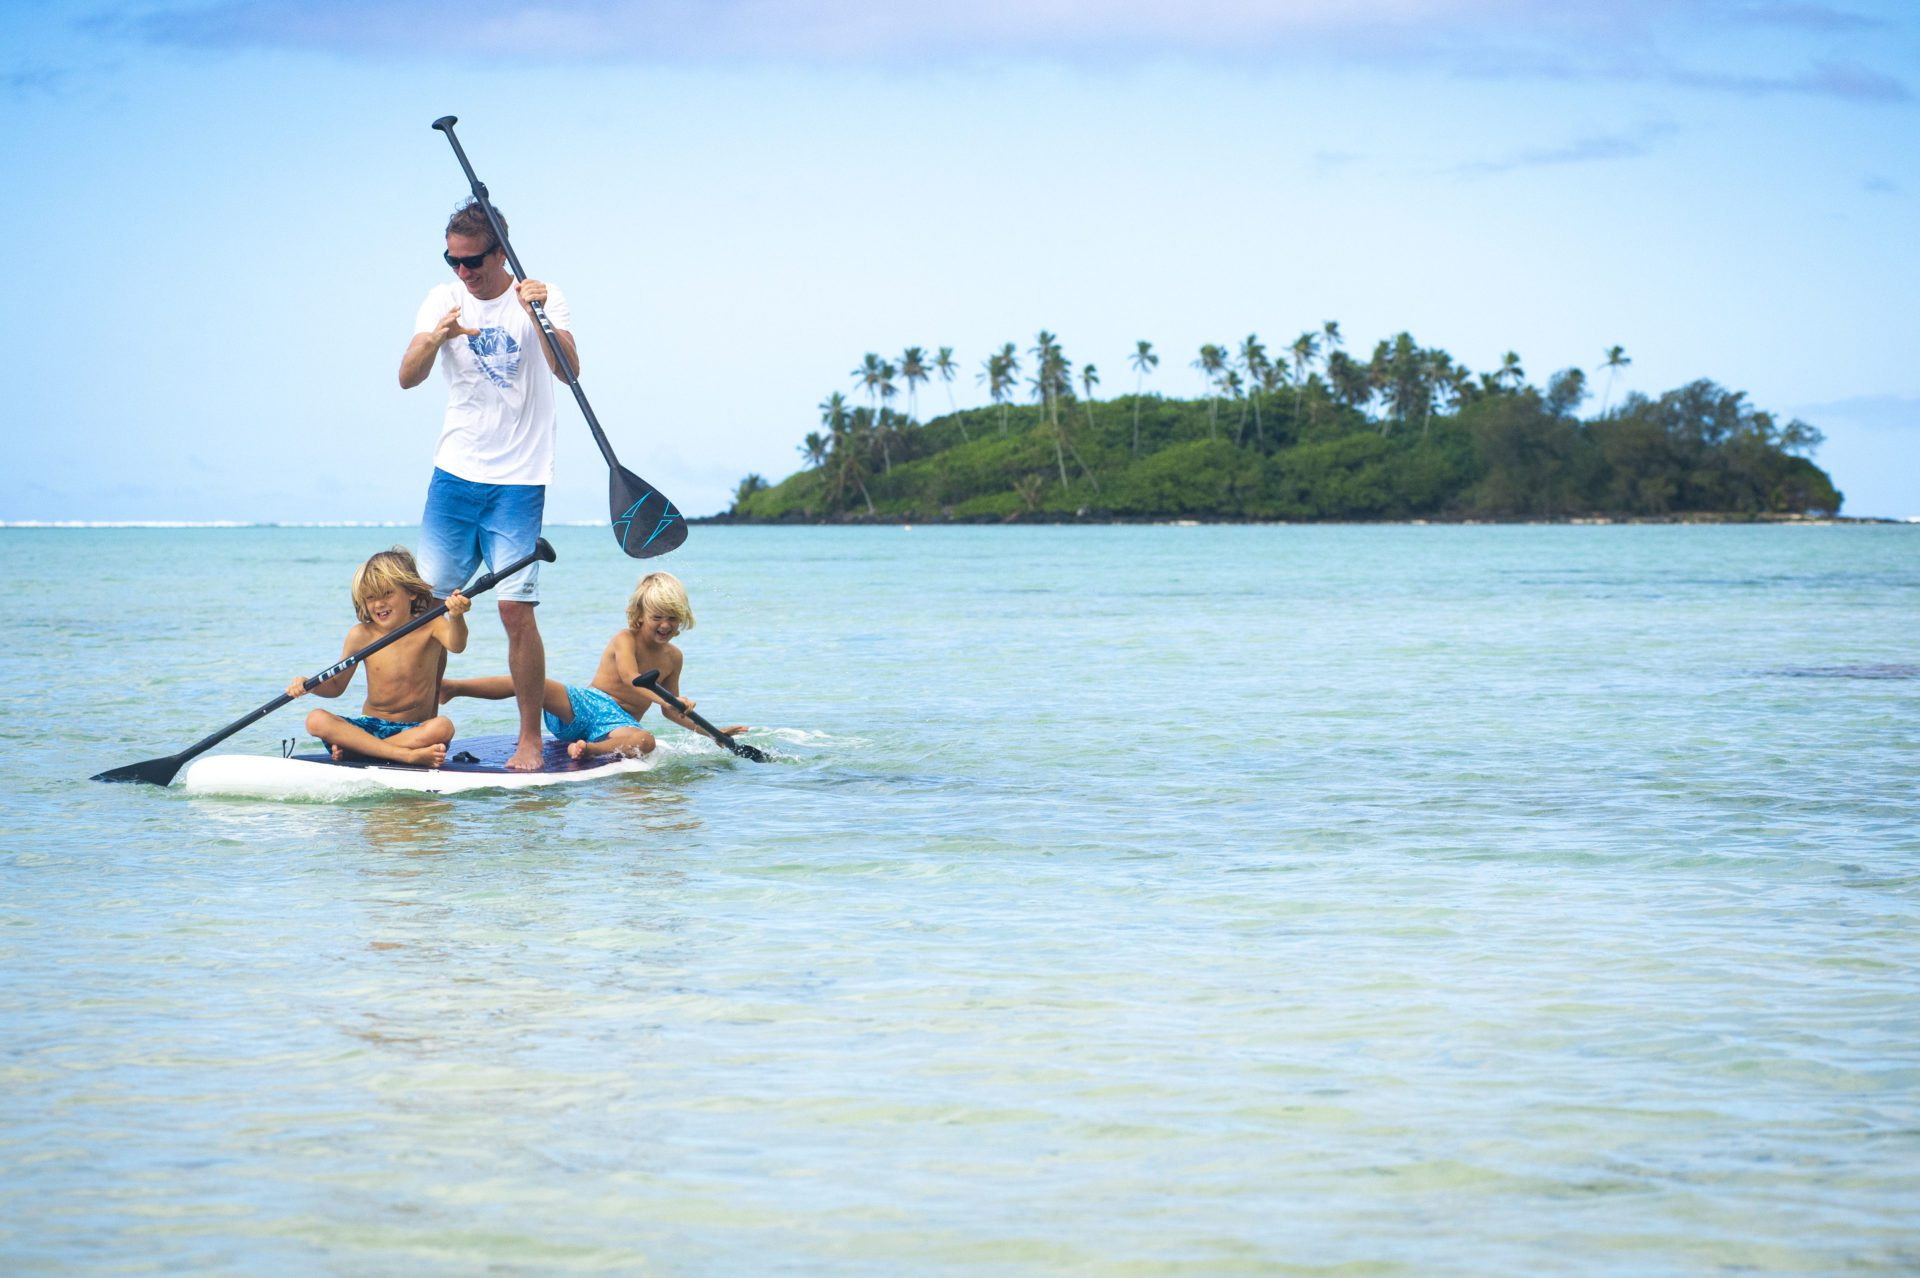 A beautiful image of father and two sons bonding in the lagoon sharing a stand-up paddleboard and smilingly paddles through the waters of Muri